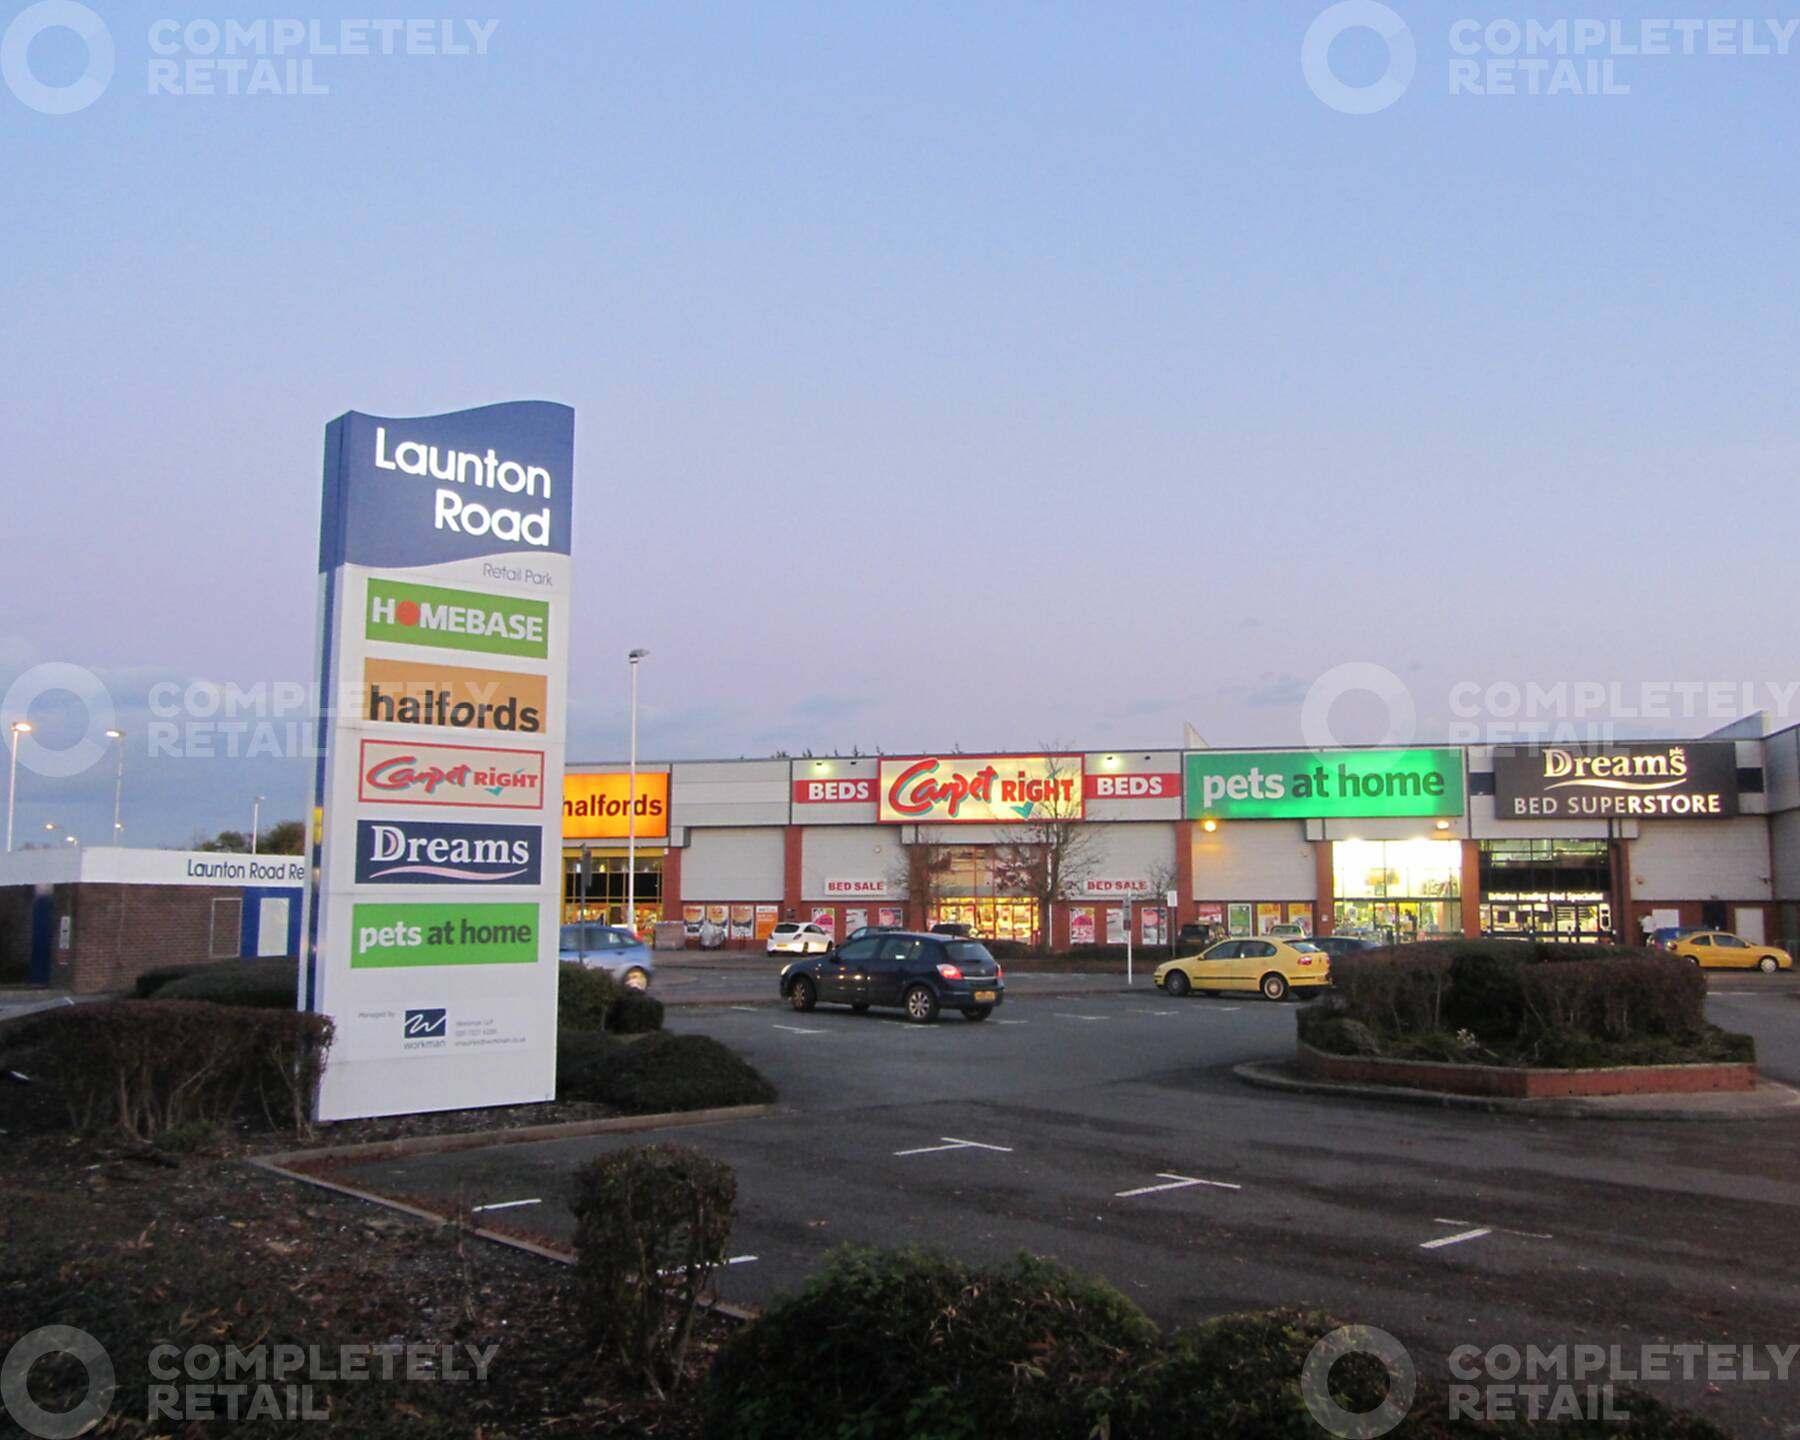 Launton Road Retail Park